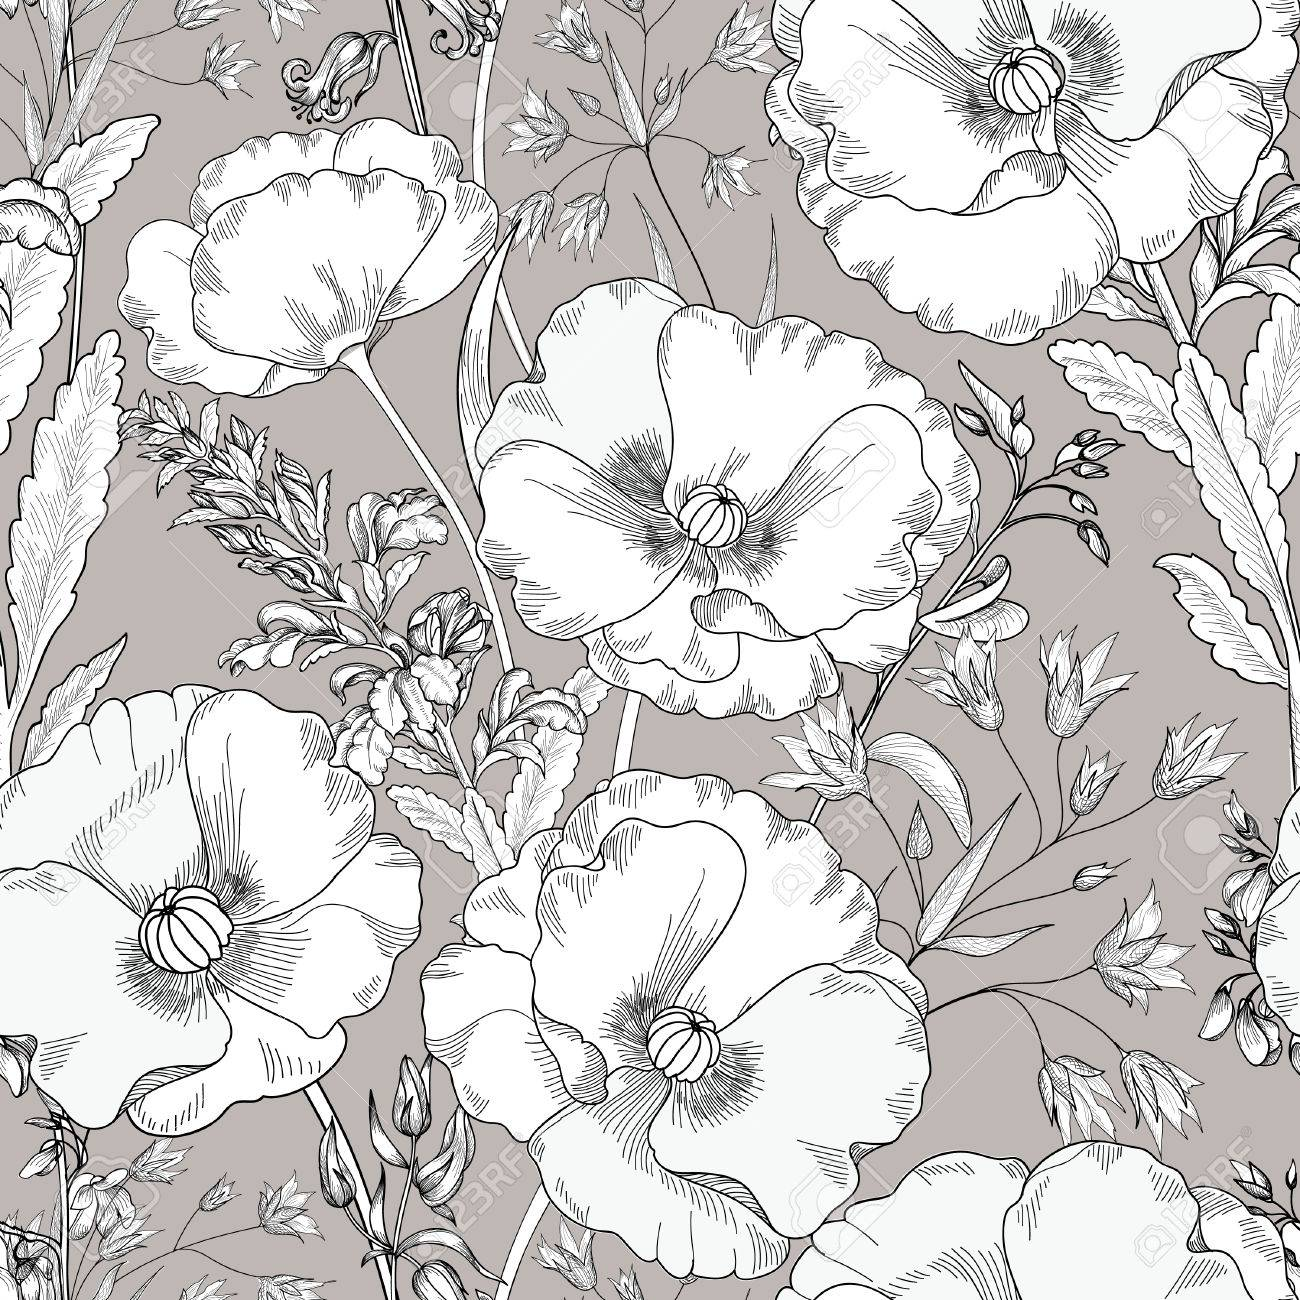 Floral seamless pattern. Flower background. Floral seamless texture with flowers. Flourish tiled wallpaper - 54853509